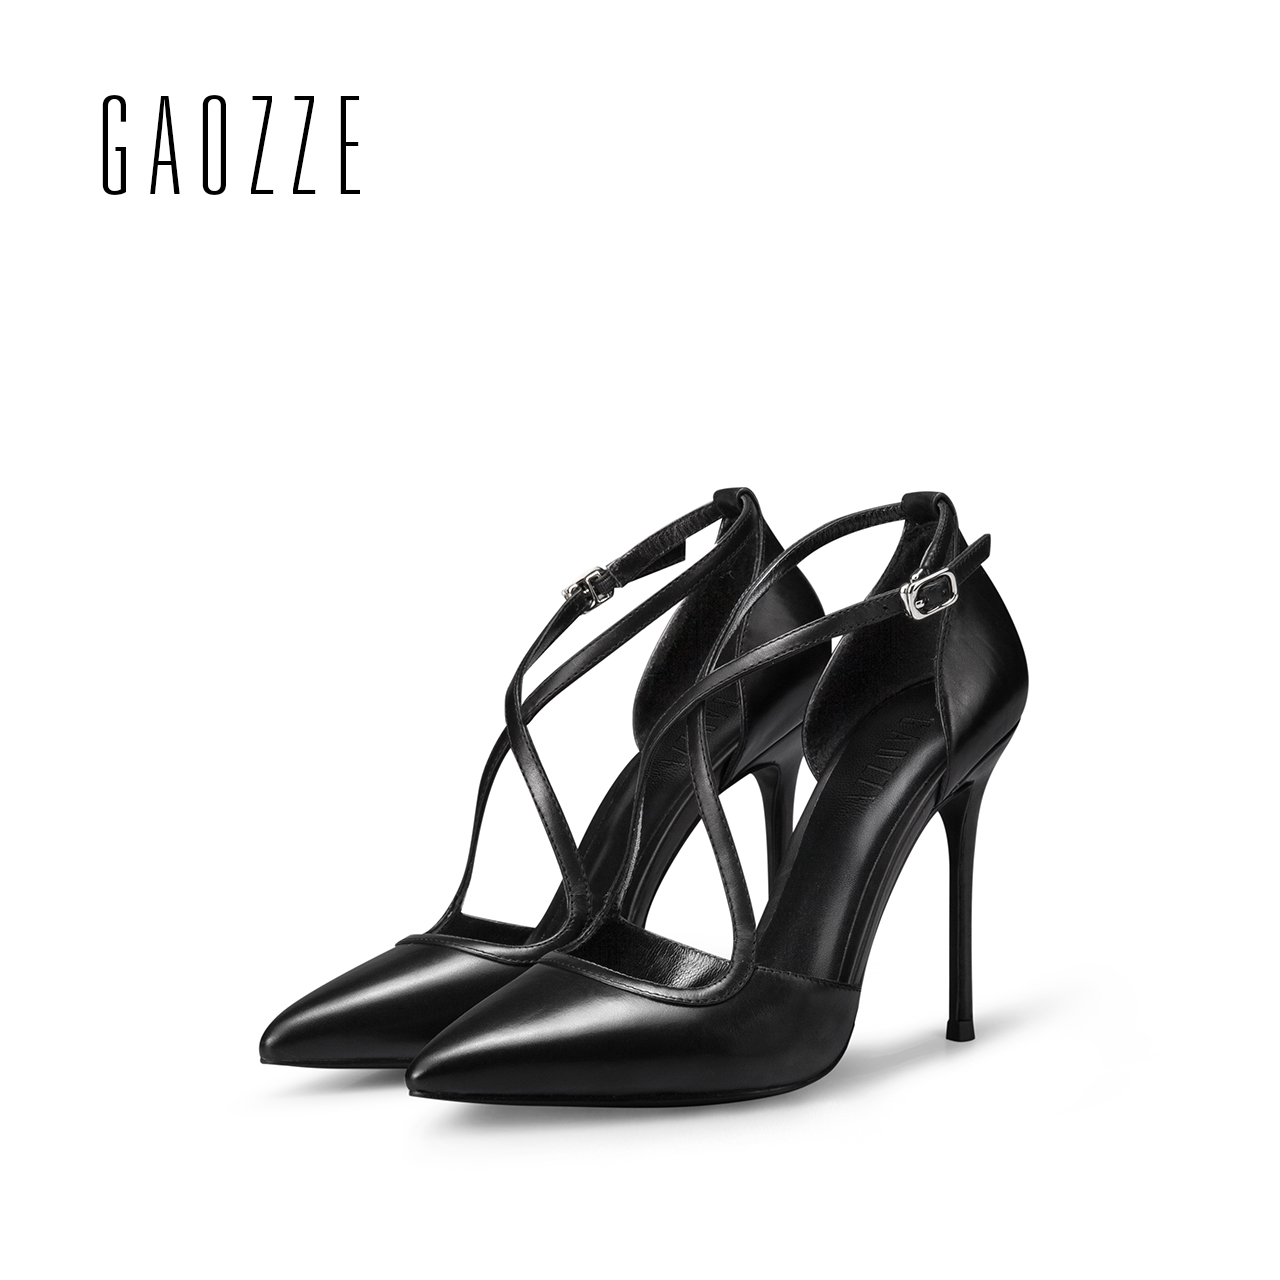 GAOZZE female high-heeled sandals cross straps leather sandals Black sexy high heels pumps pointed toe women shoes spring 2017 sexy pointed toe sheepskin leather high heeled shoes straps ankle wrap sandals women thin heels ol summer boots sandals